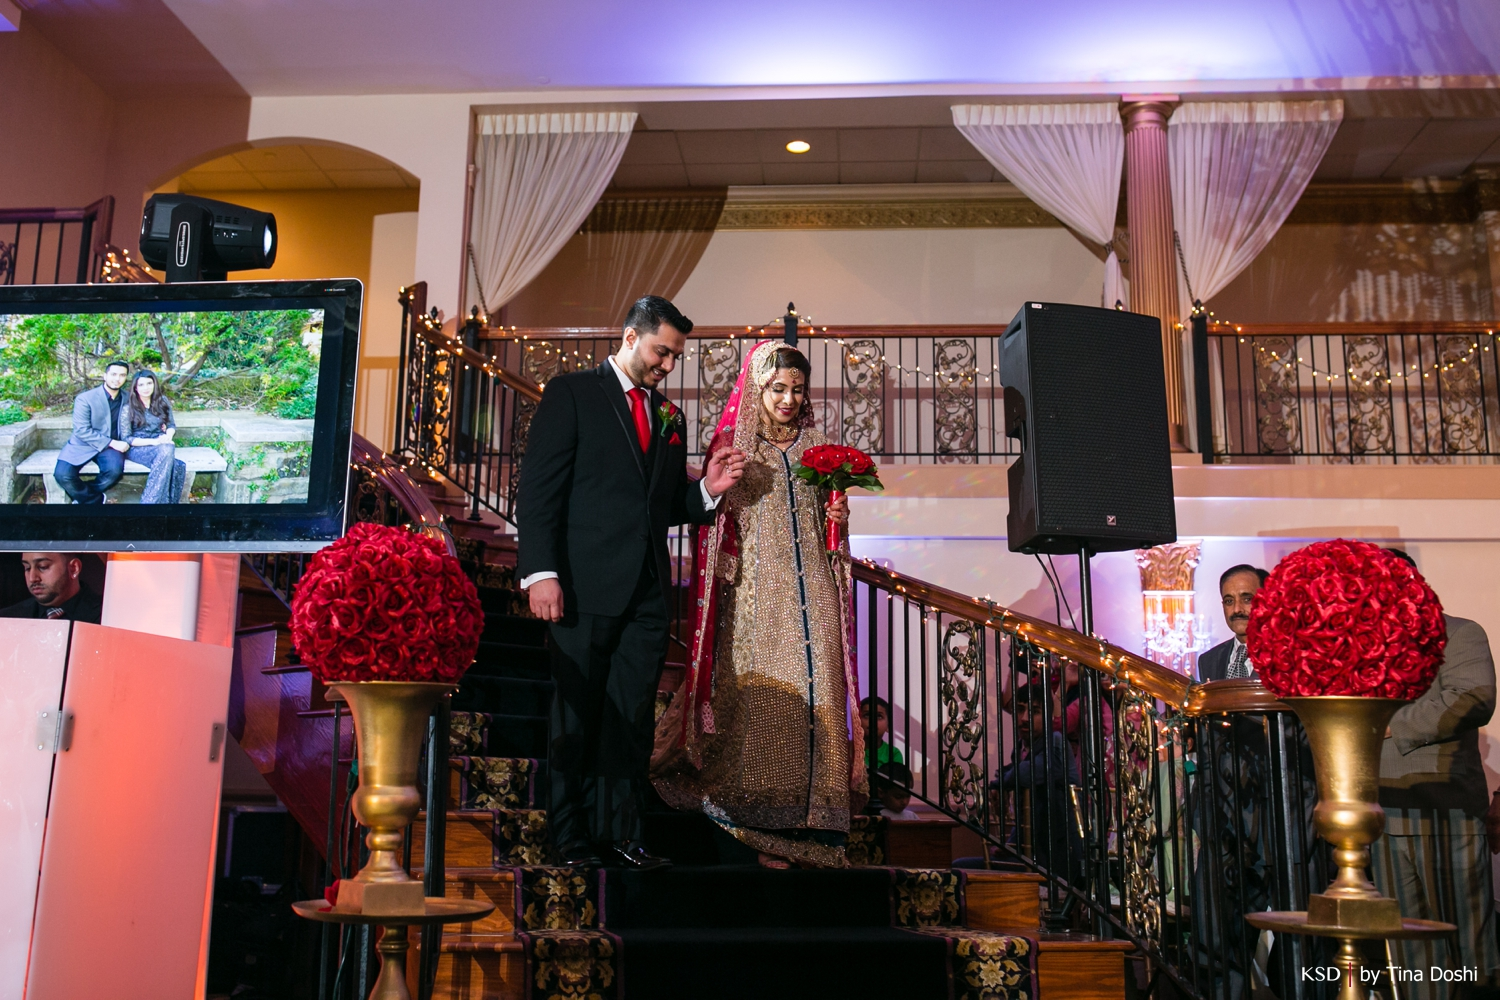 nj_south_asian_wedding_0108